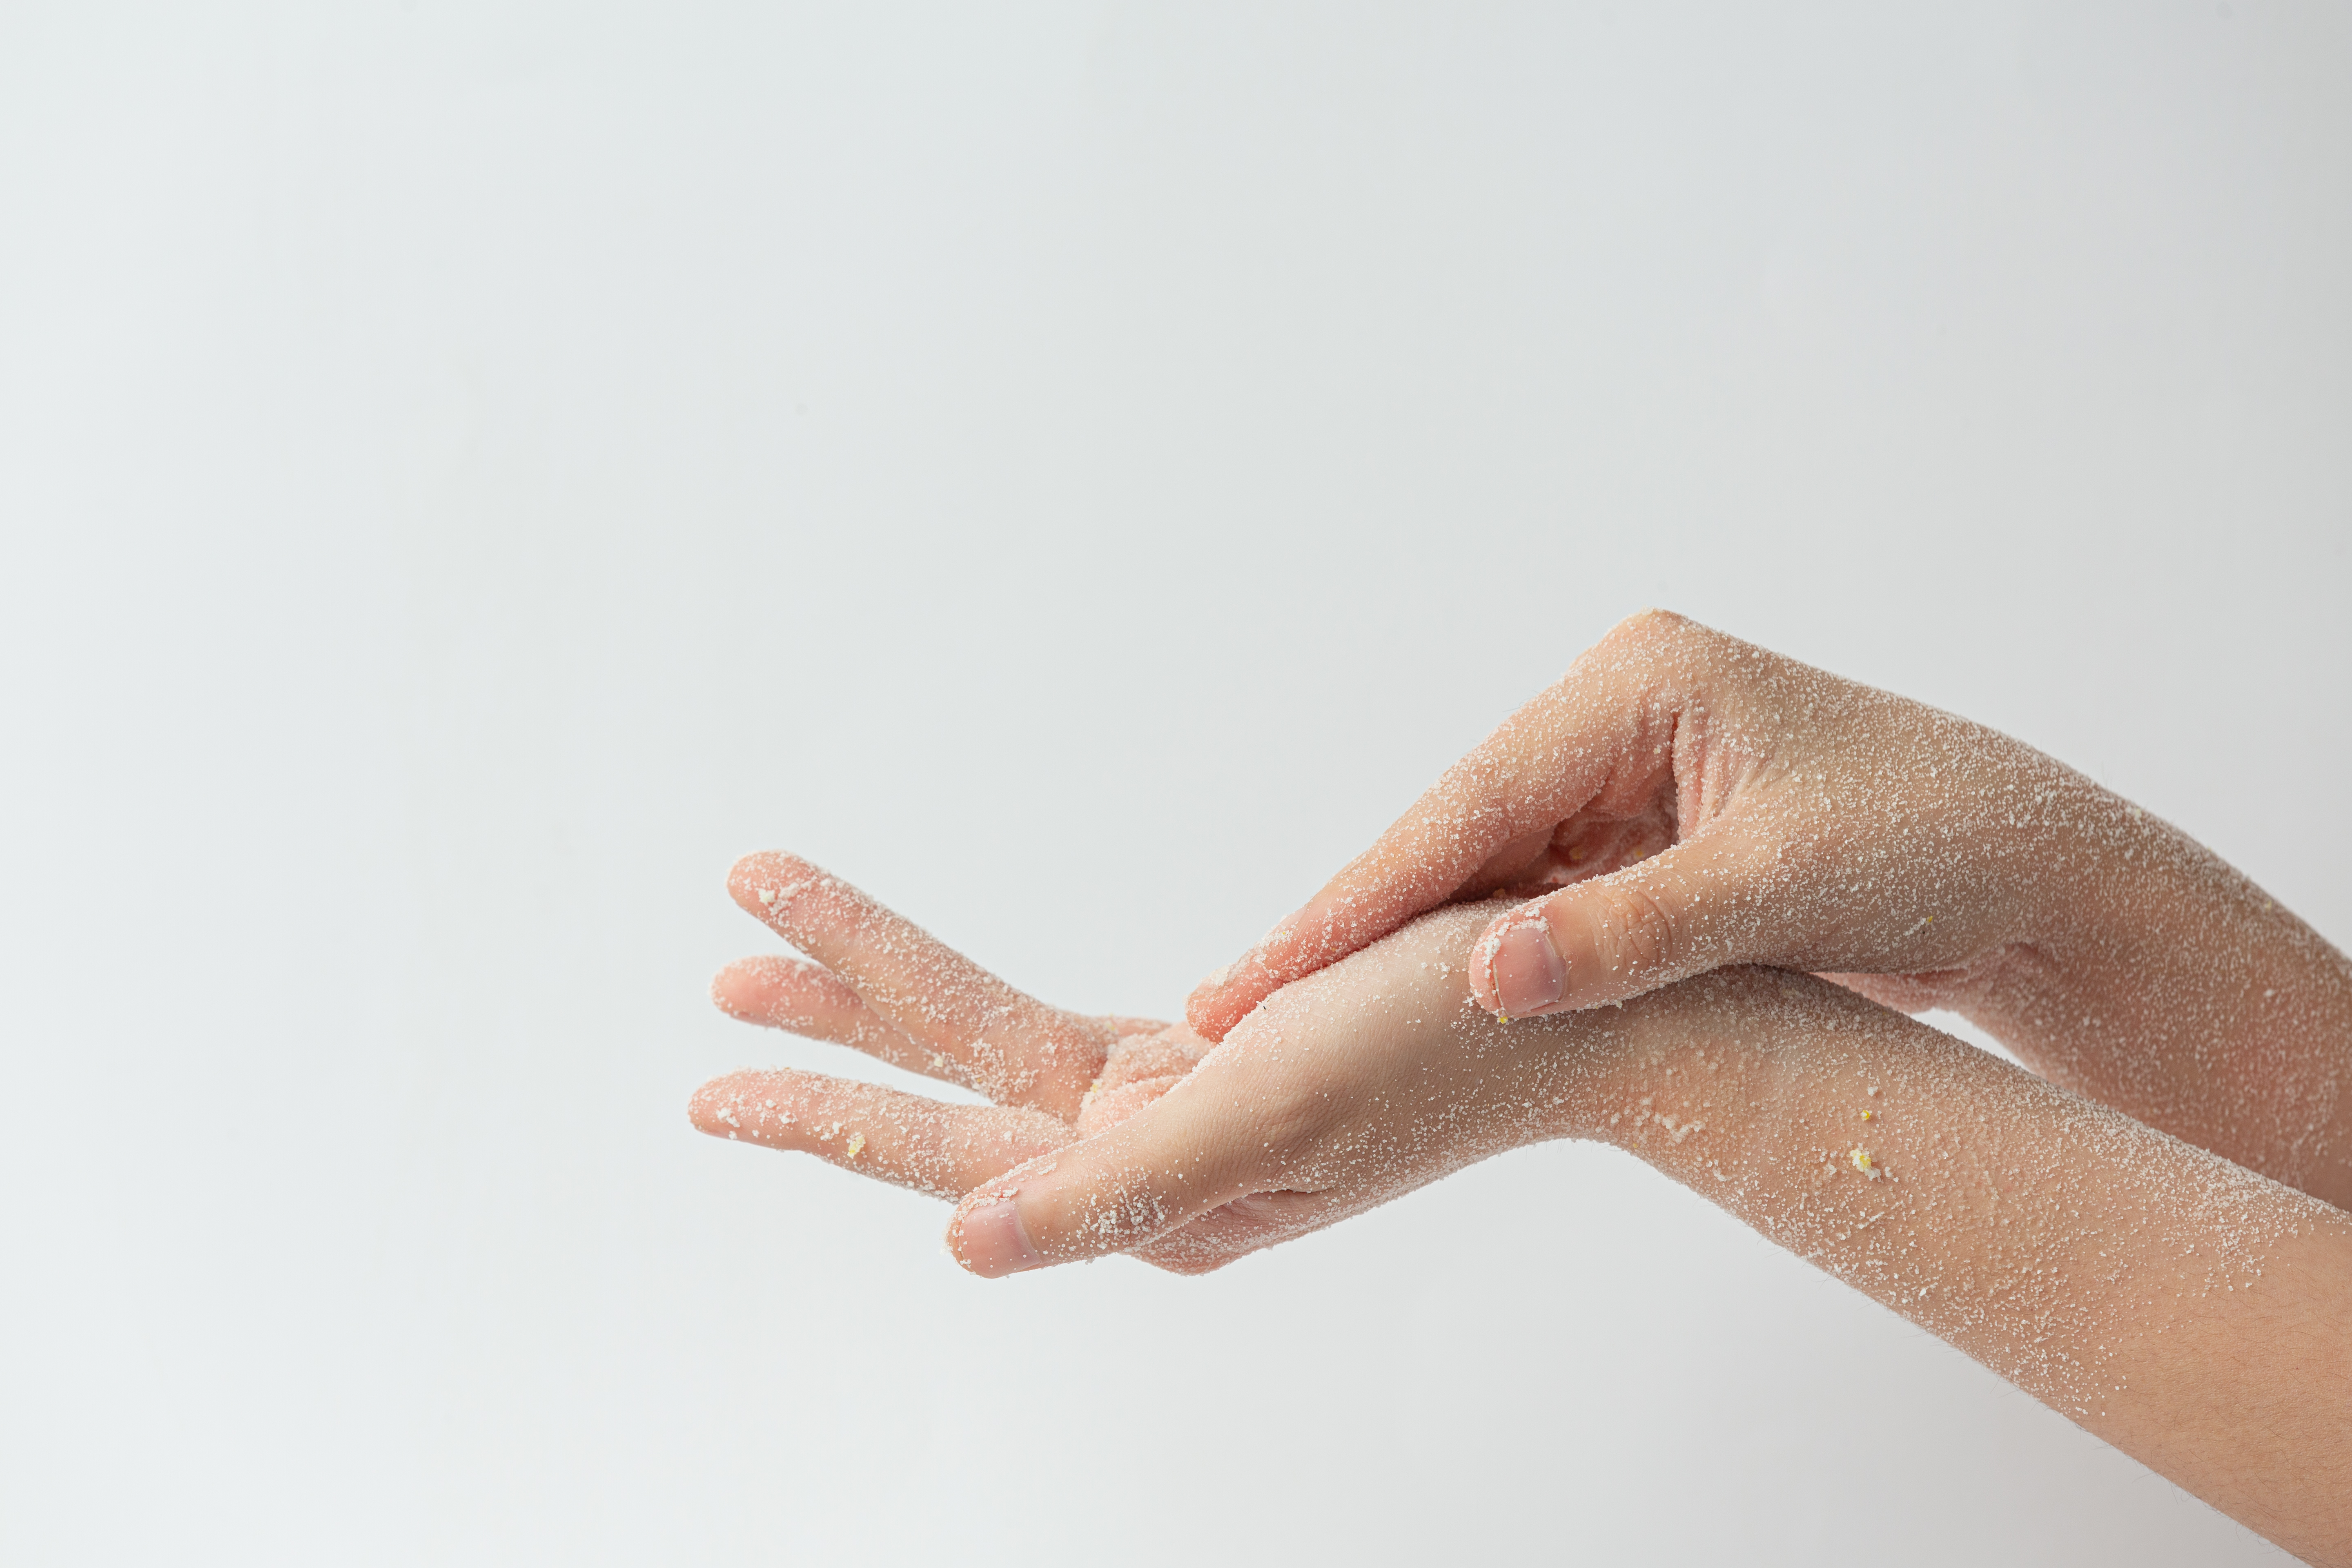 Young woman applying natural lemon scrub on hands against white